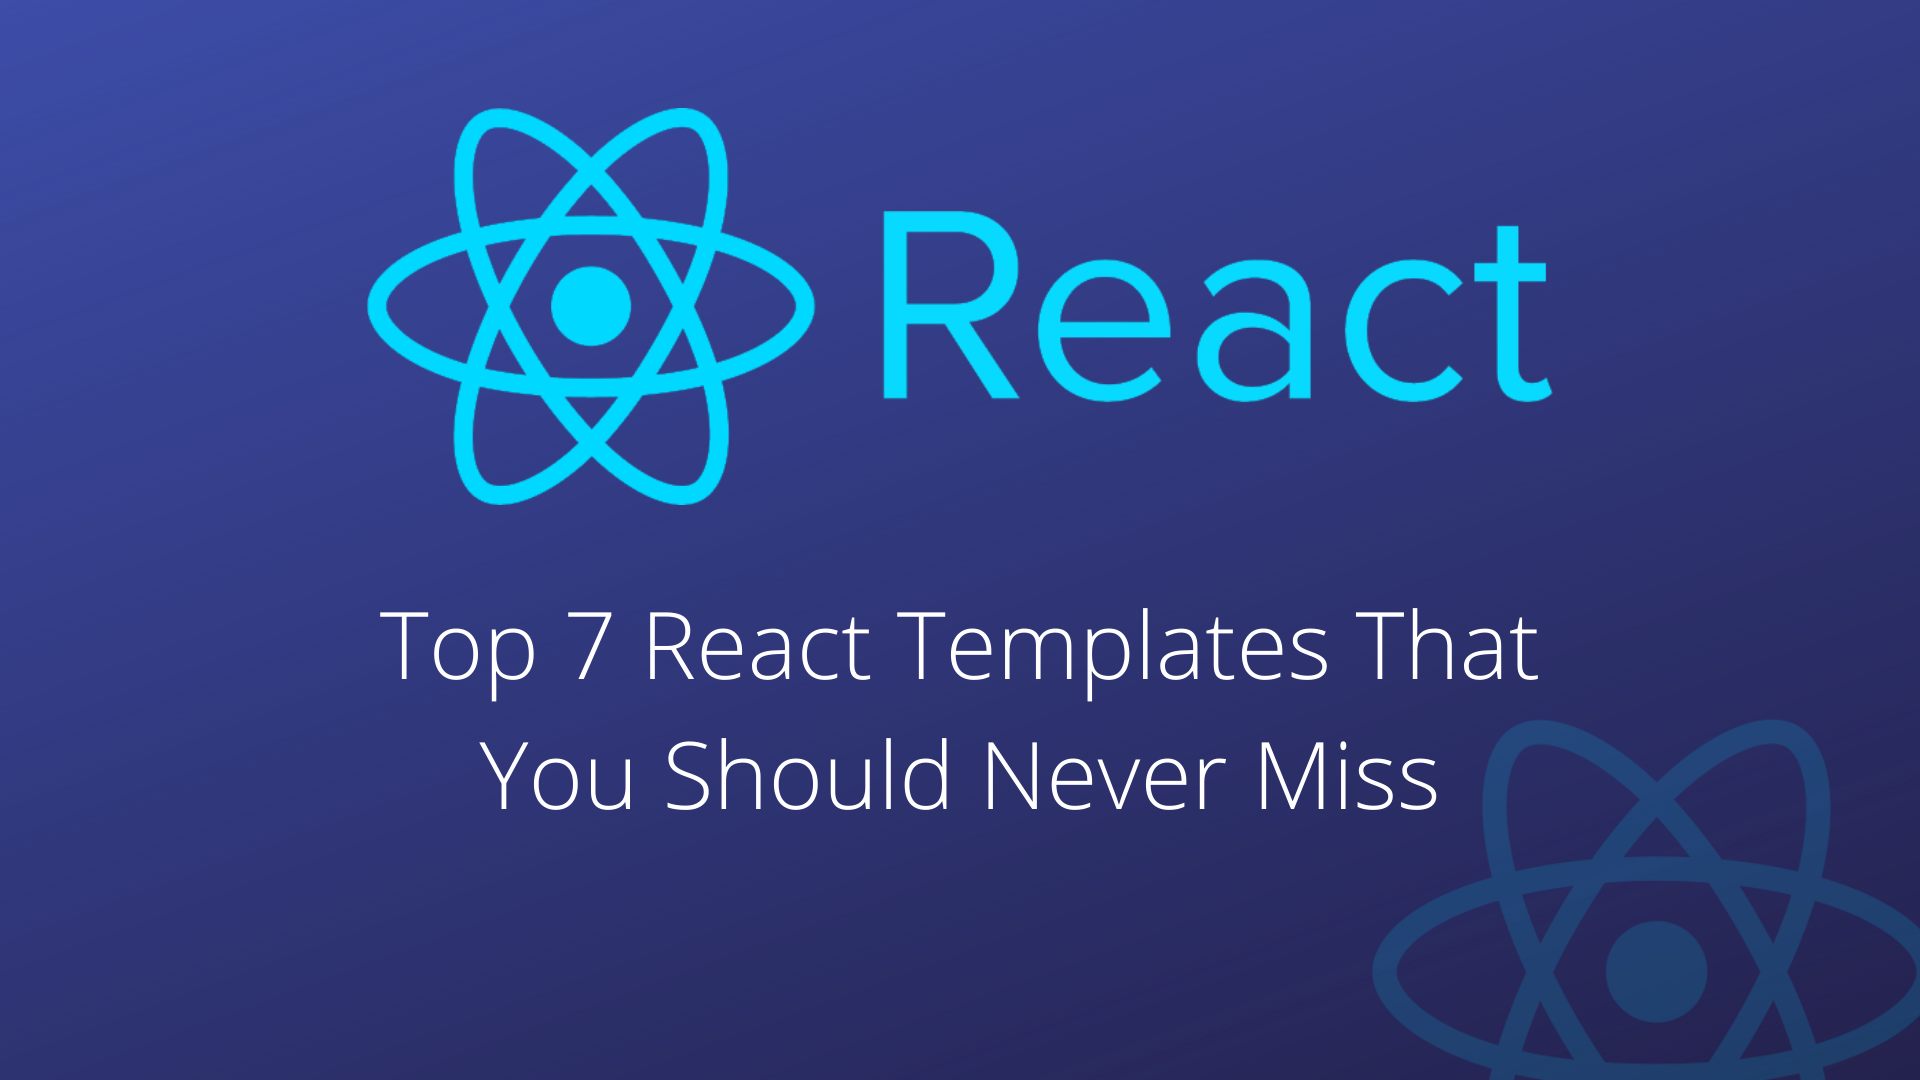 Top 7 React Templates That You Should Never Miss